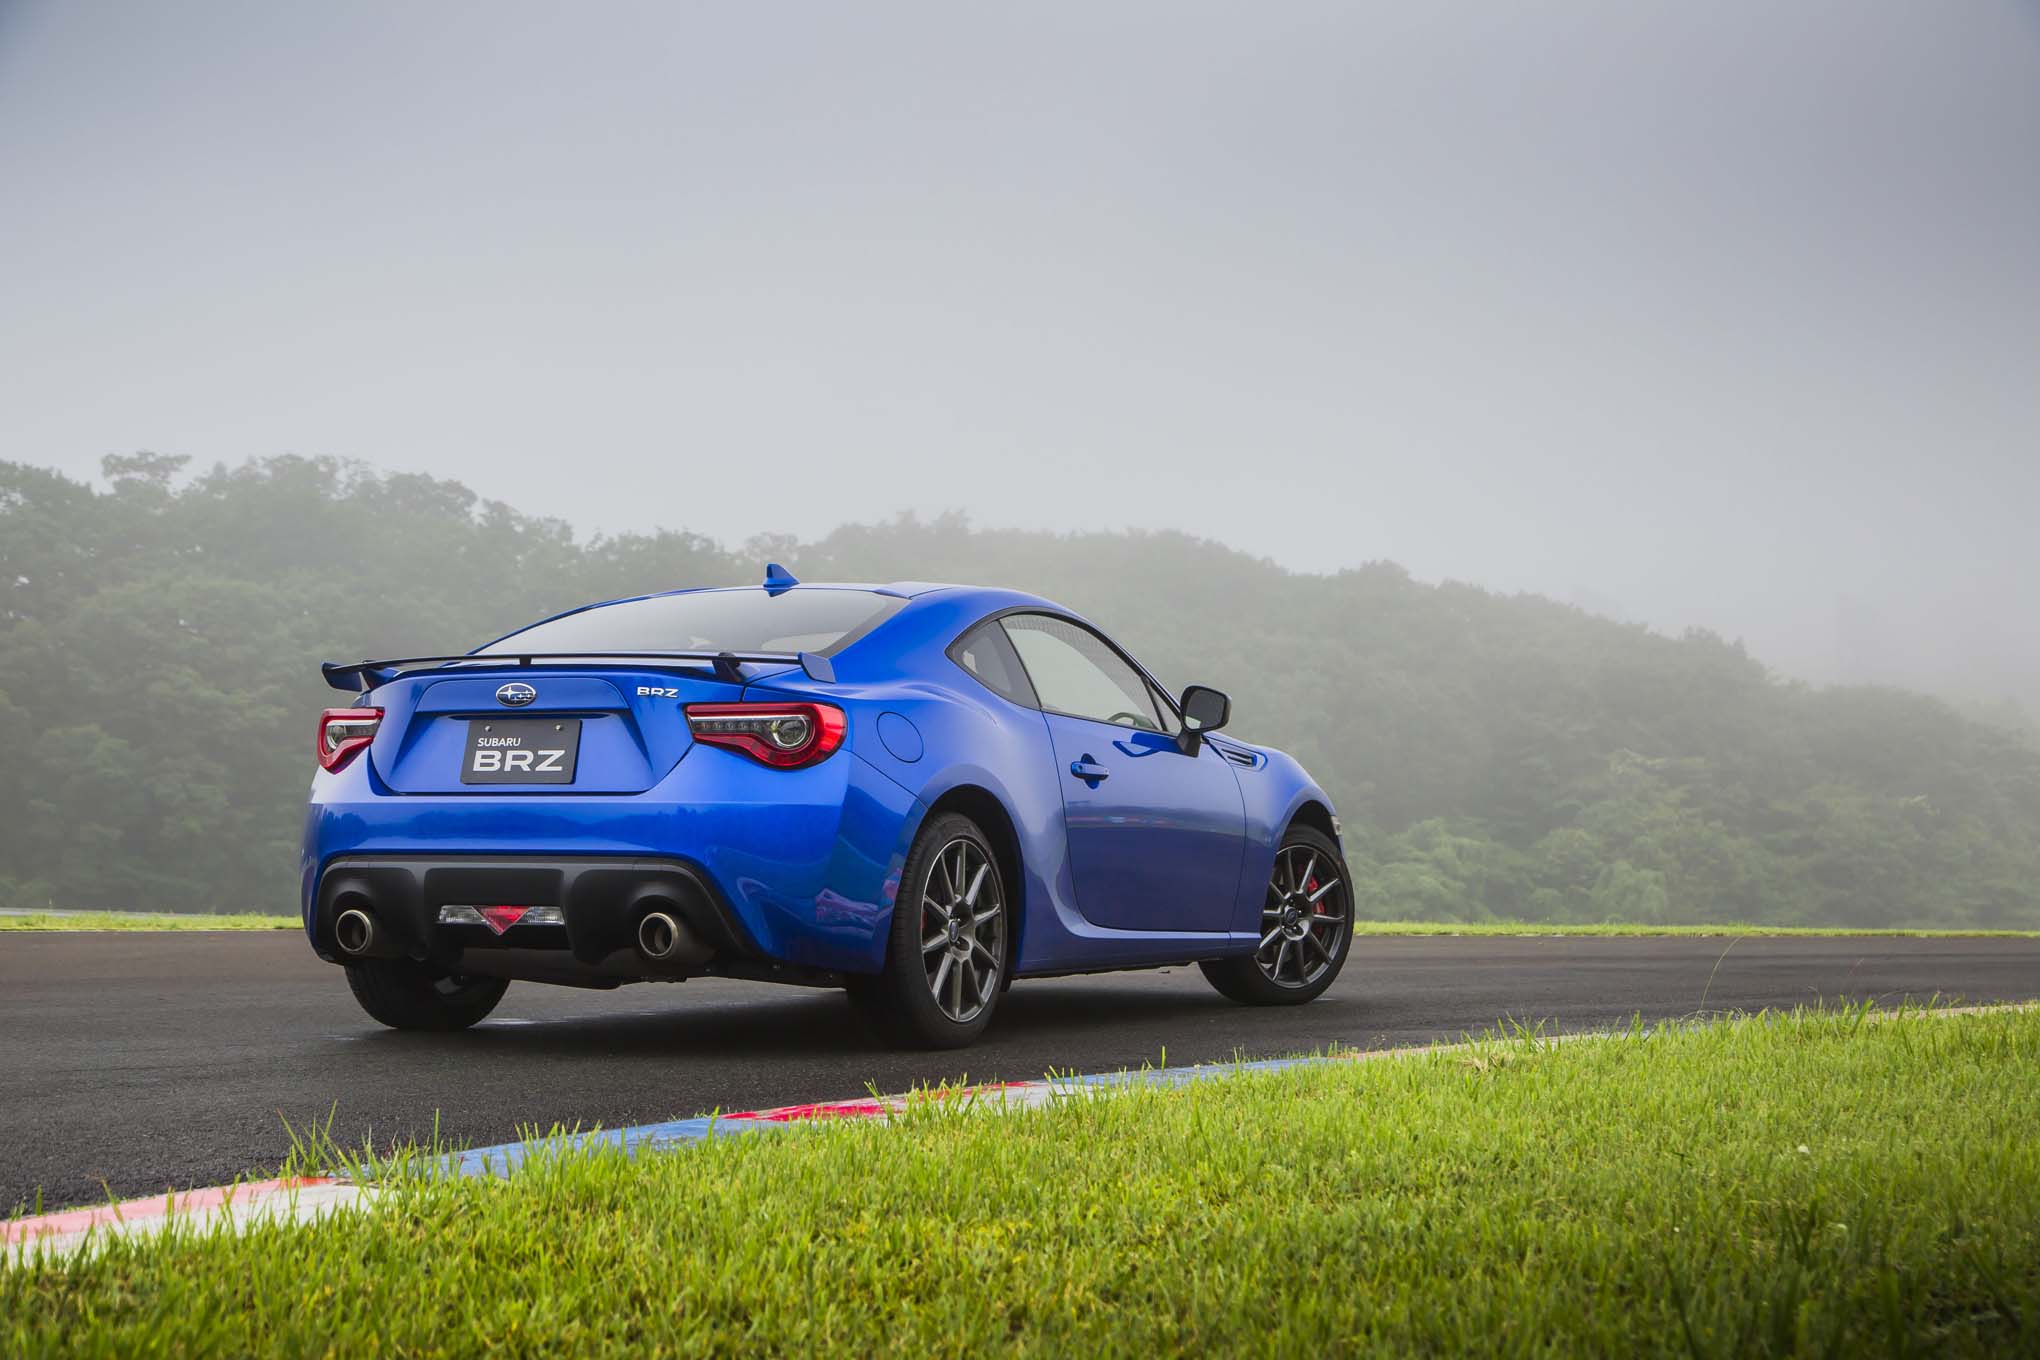 First Drive: 2017 Subaru BRZ | Automobile Magazine